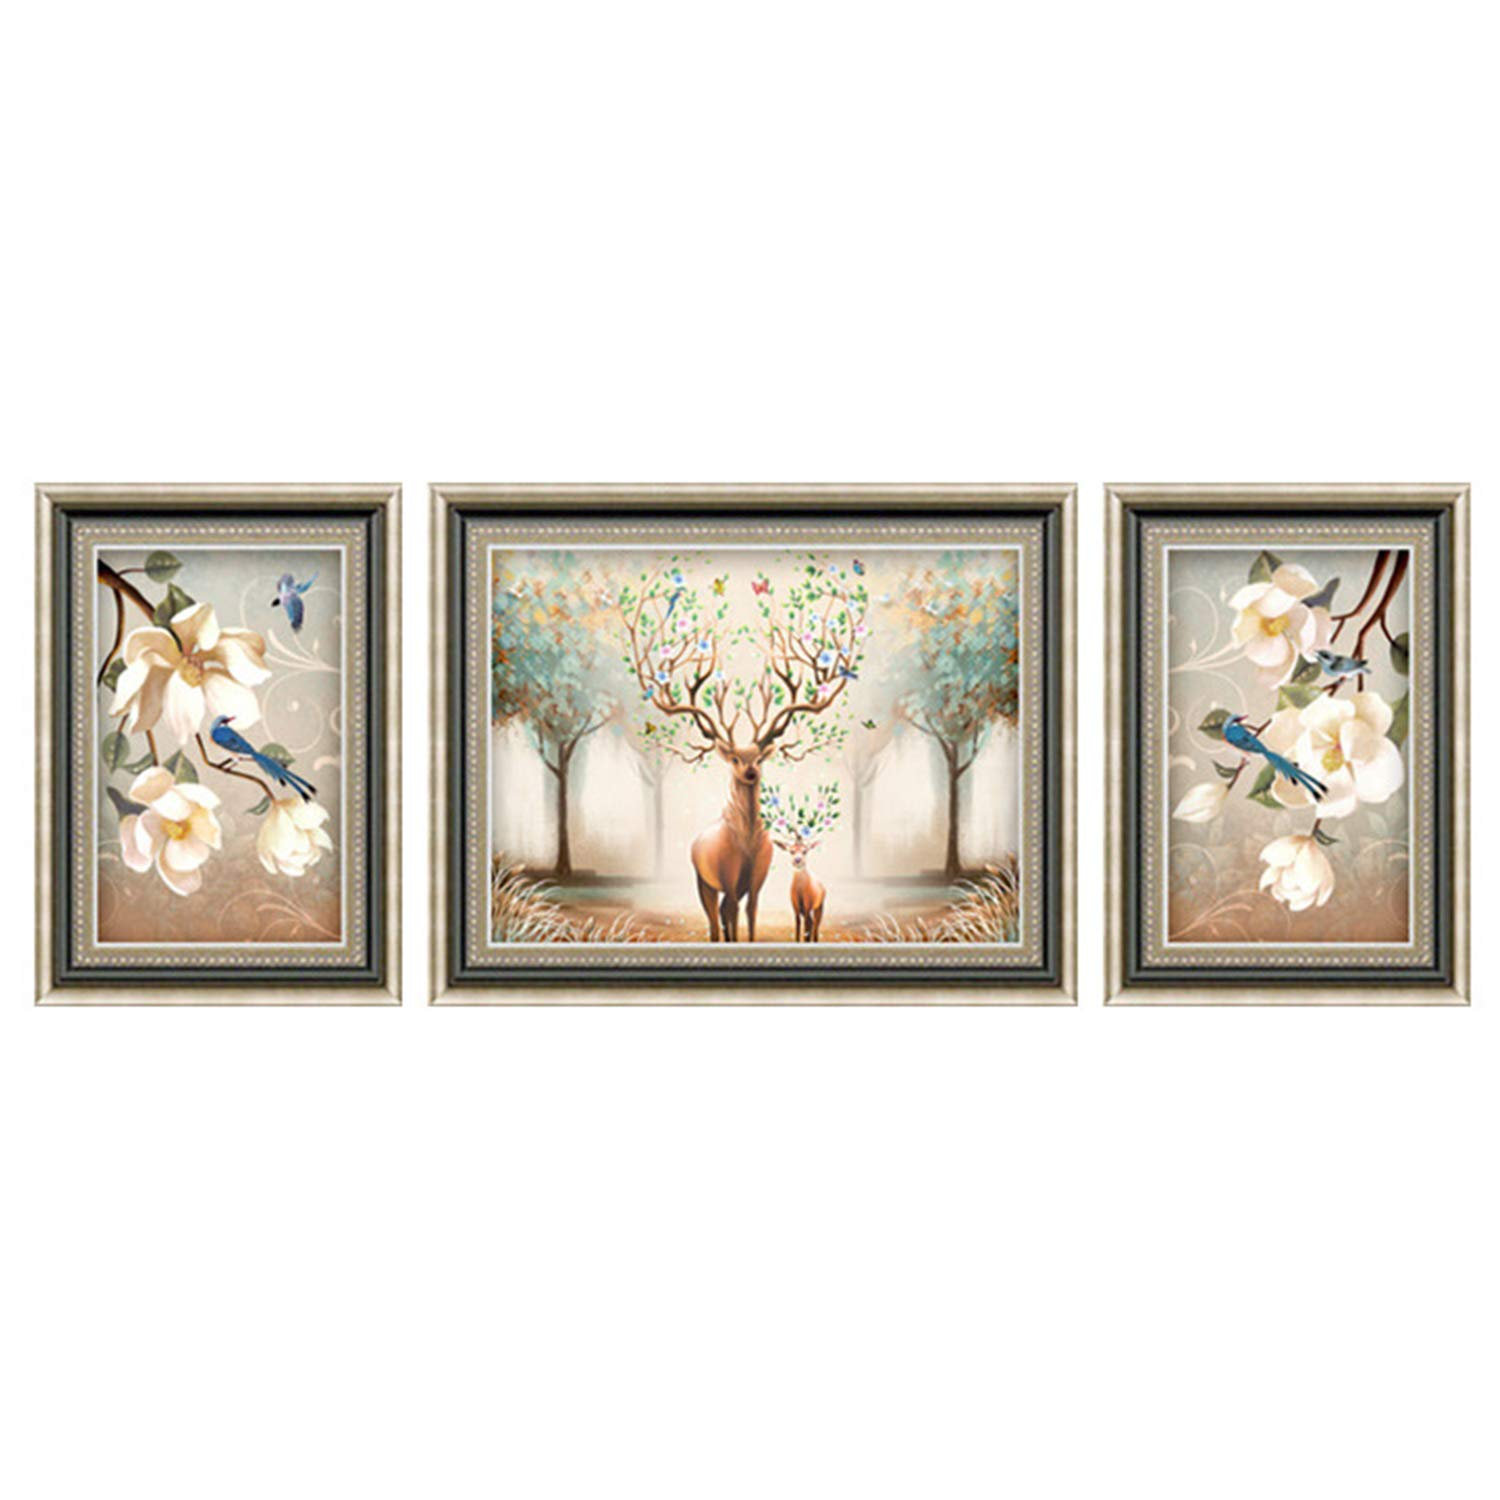 LUHSICE Large Painting with Diamonds - Rich Deer, (Round Drill 280x100cm) by LUHSICE